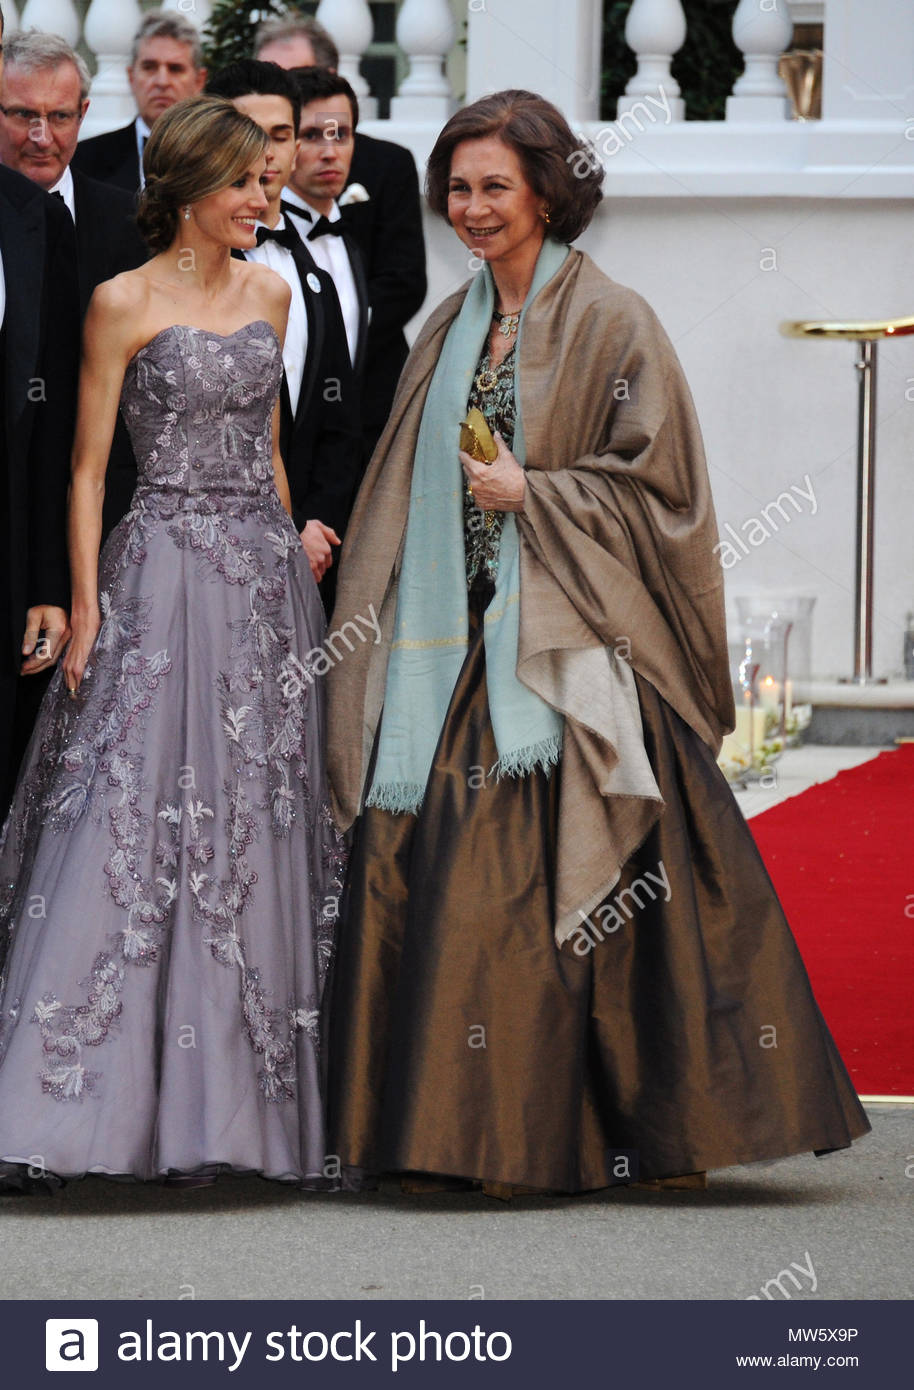 Princess Letizia And Queen Sofia Reception Hosted By Queen